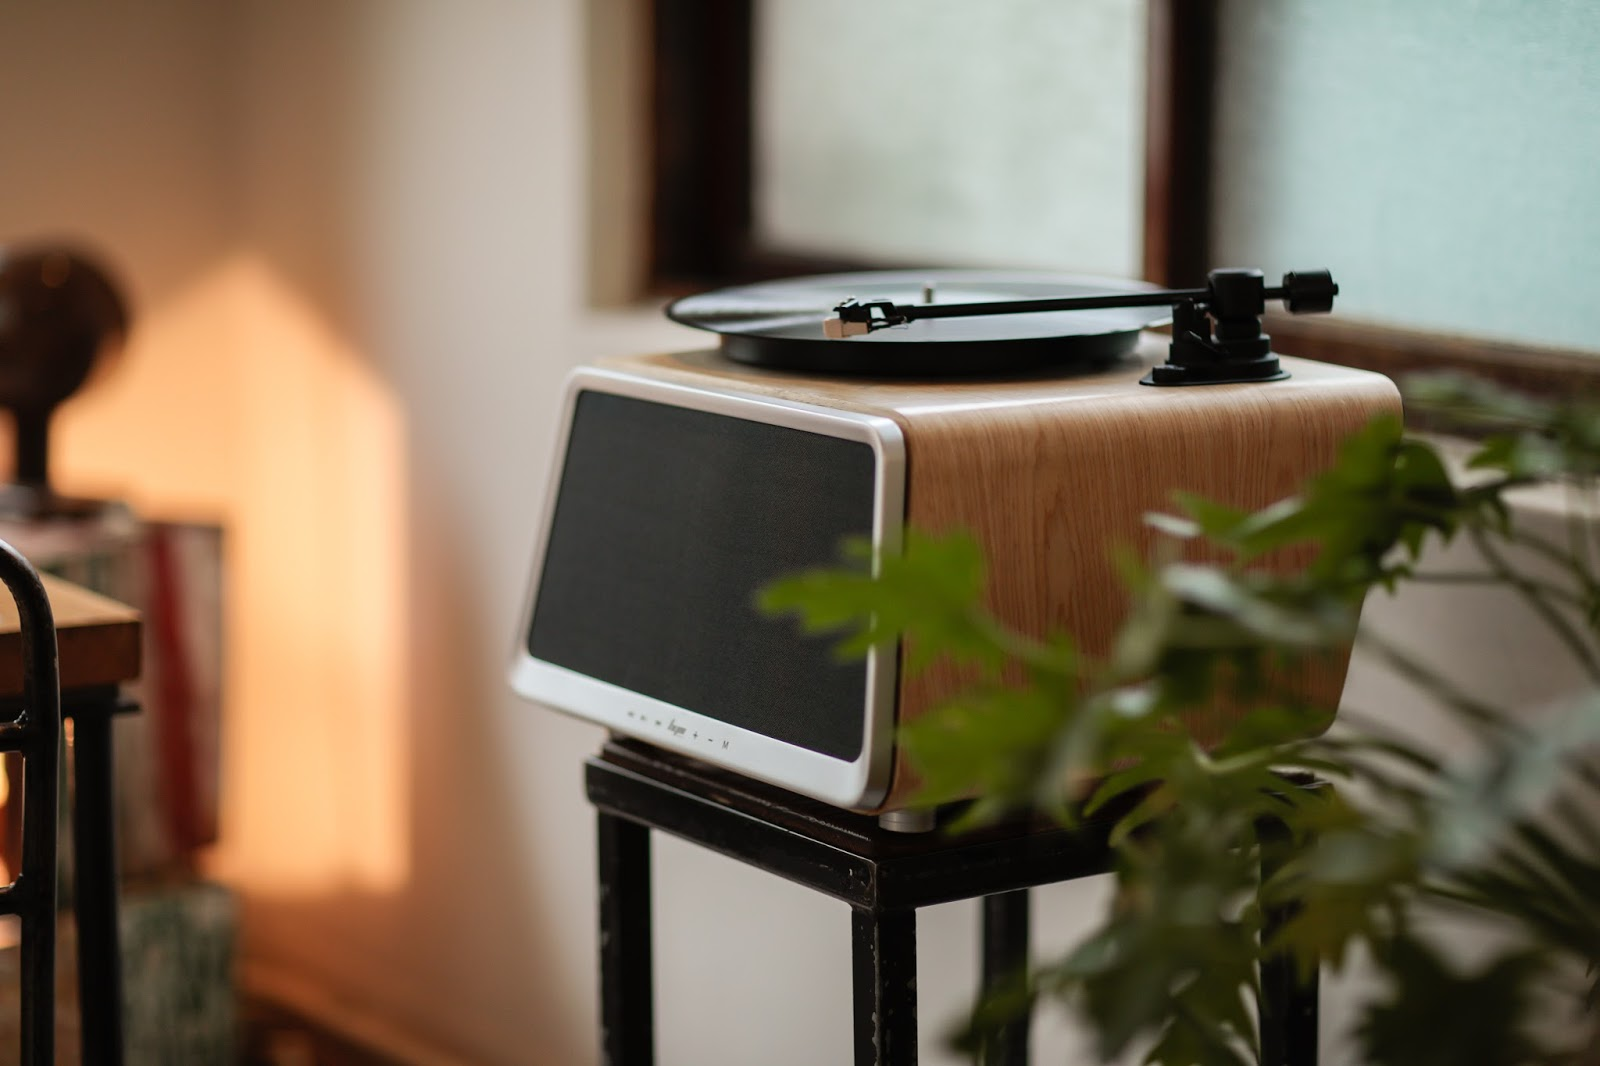 Der hym Seed Turntable | Der Future Design All in One Plattenspieler rockt Kickstarter